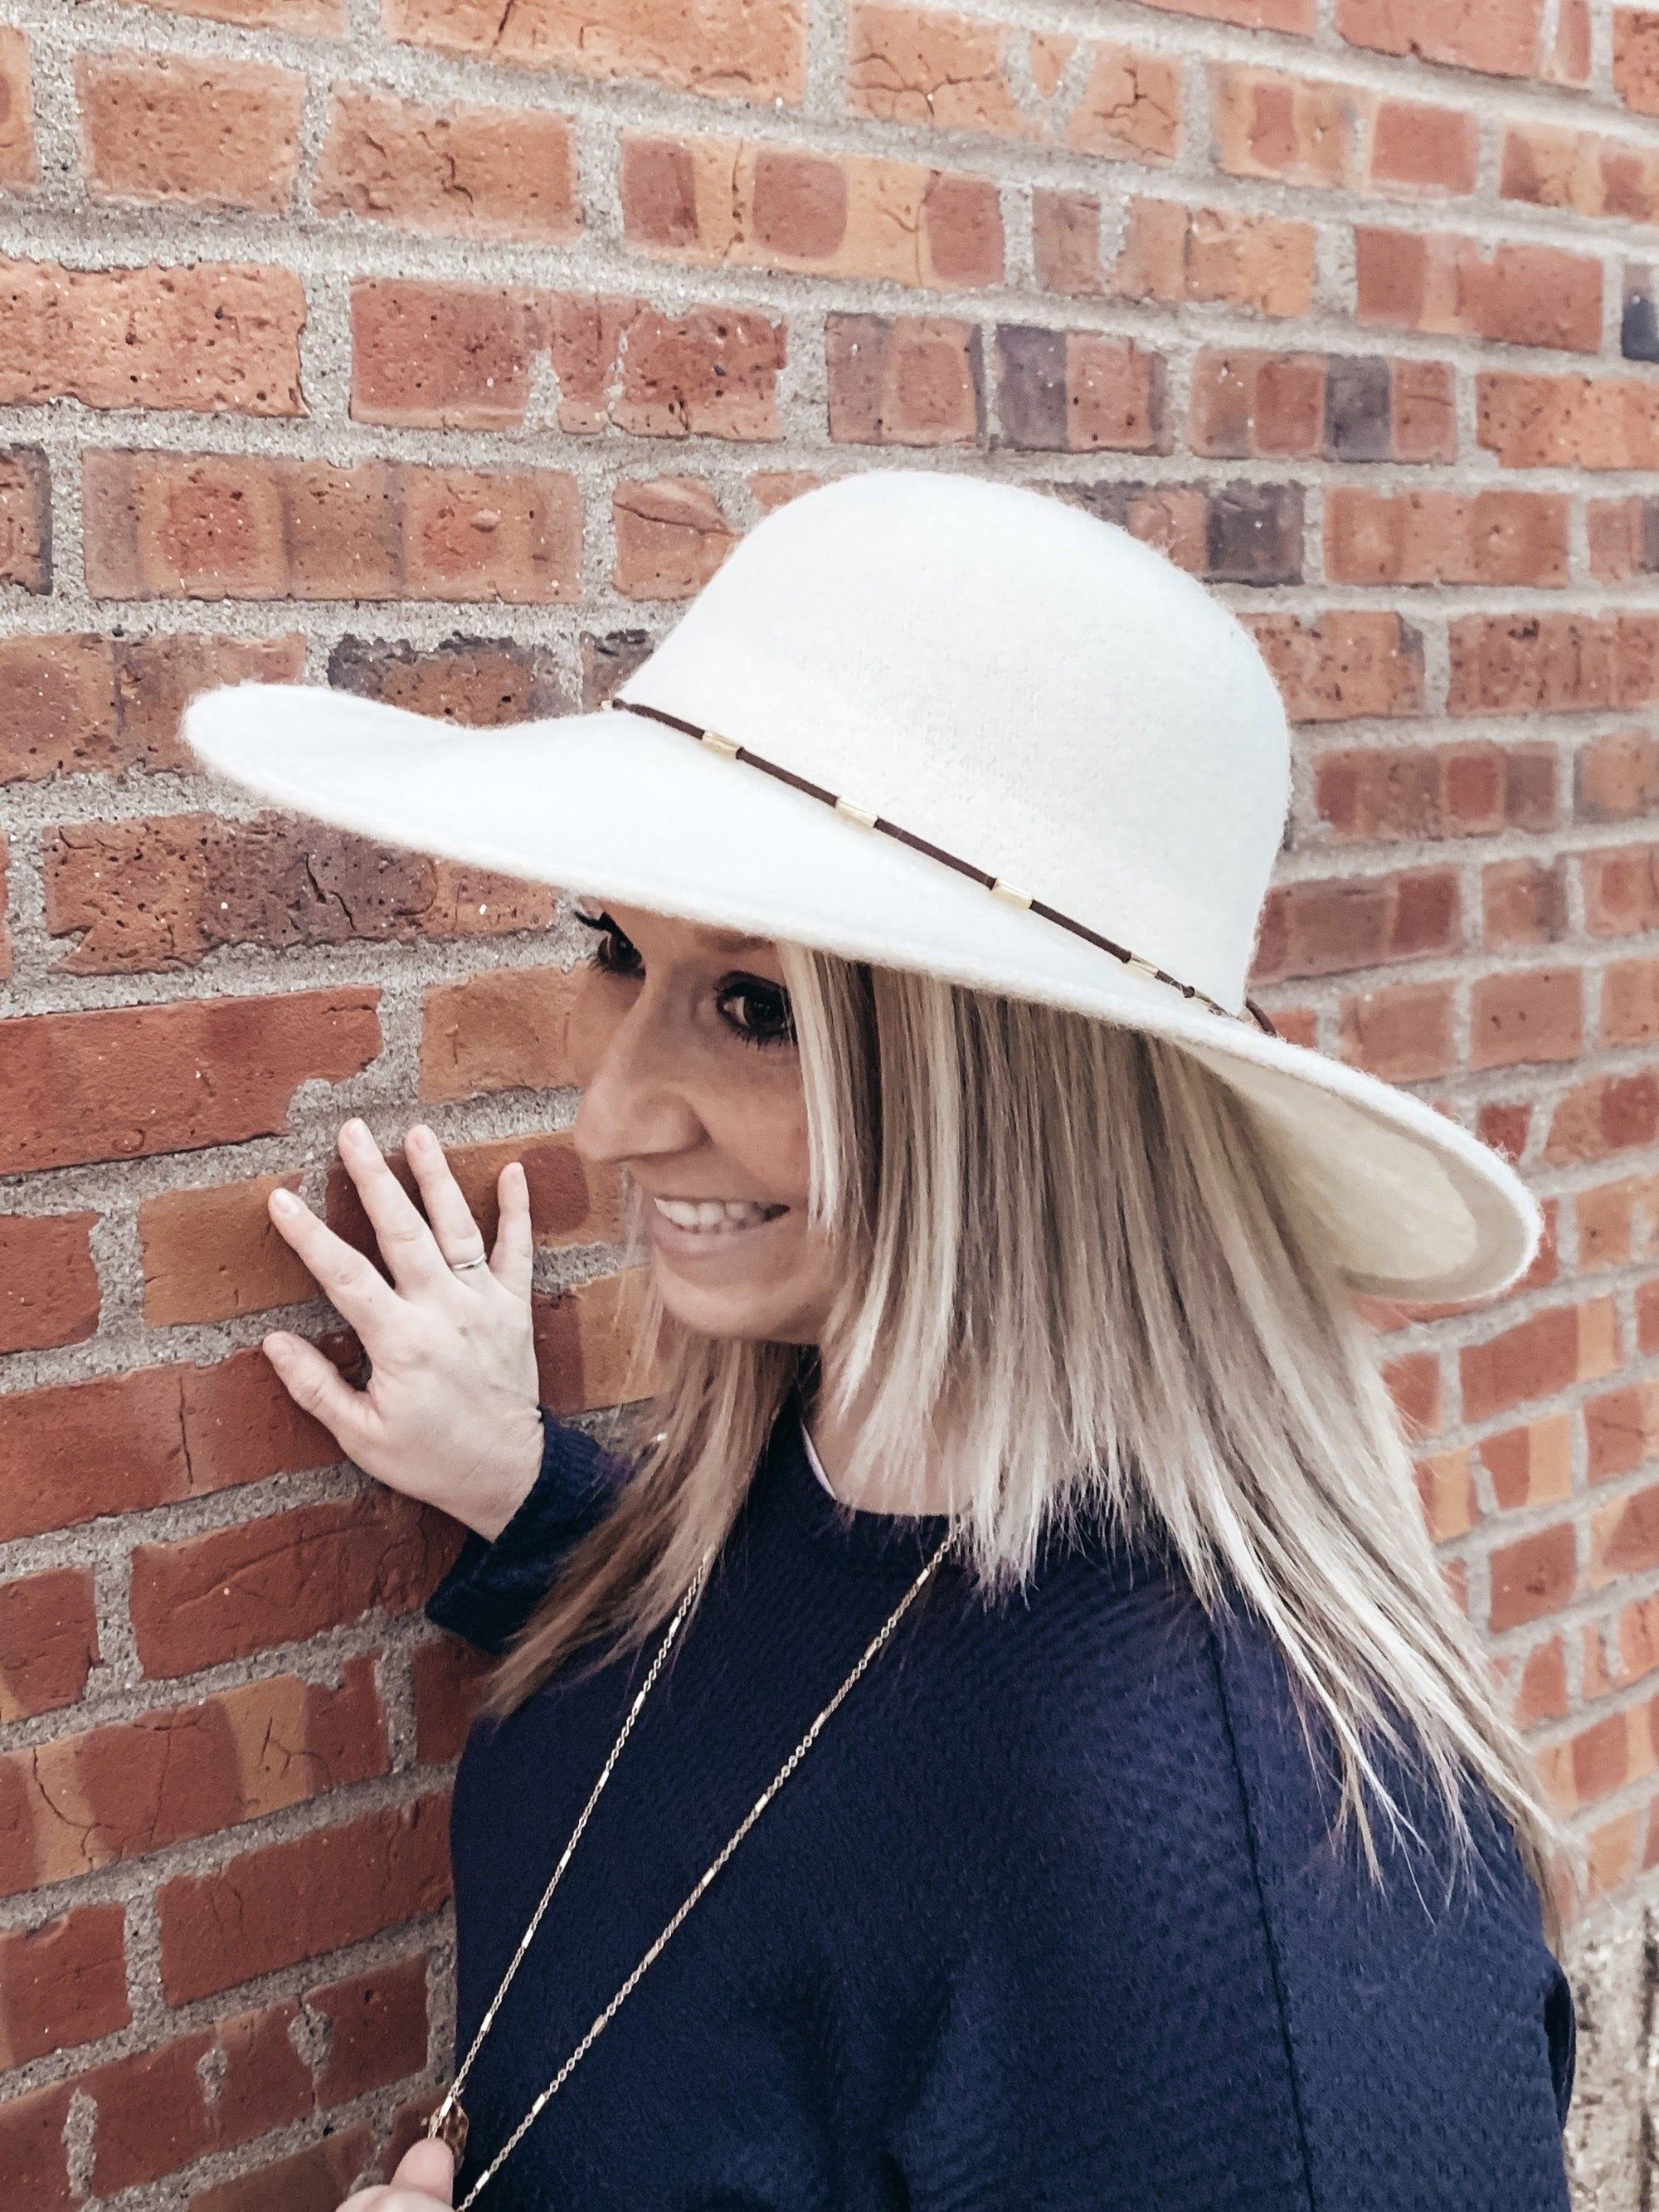 Dressed in Ivory Wool Floppy Hat Accessories Urbanista